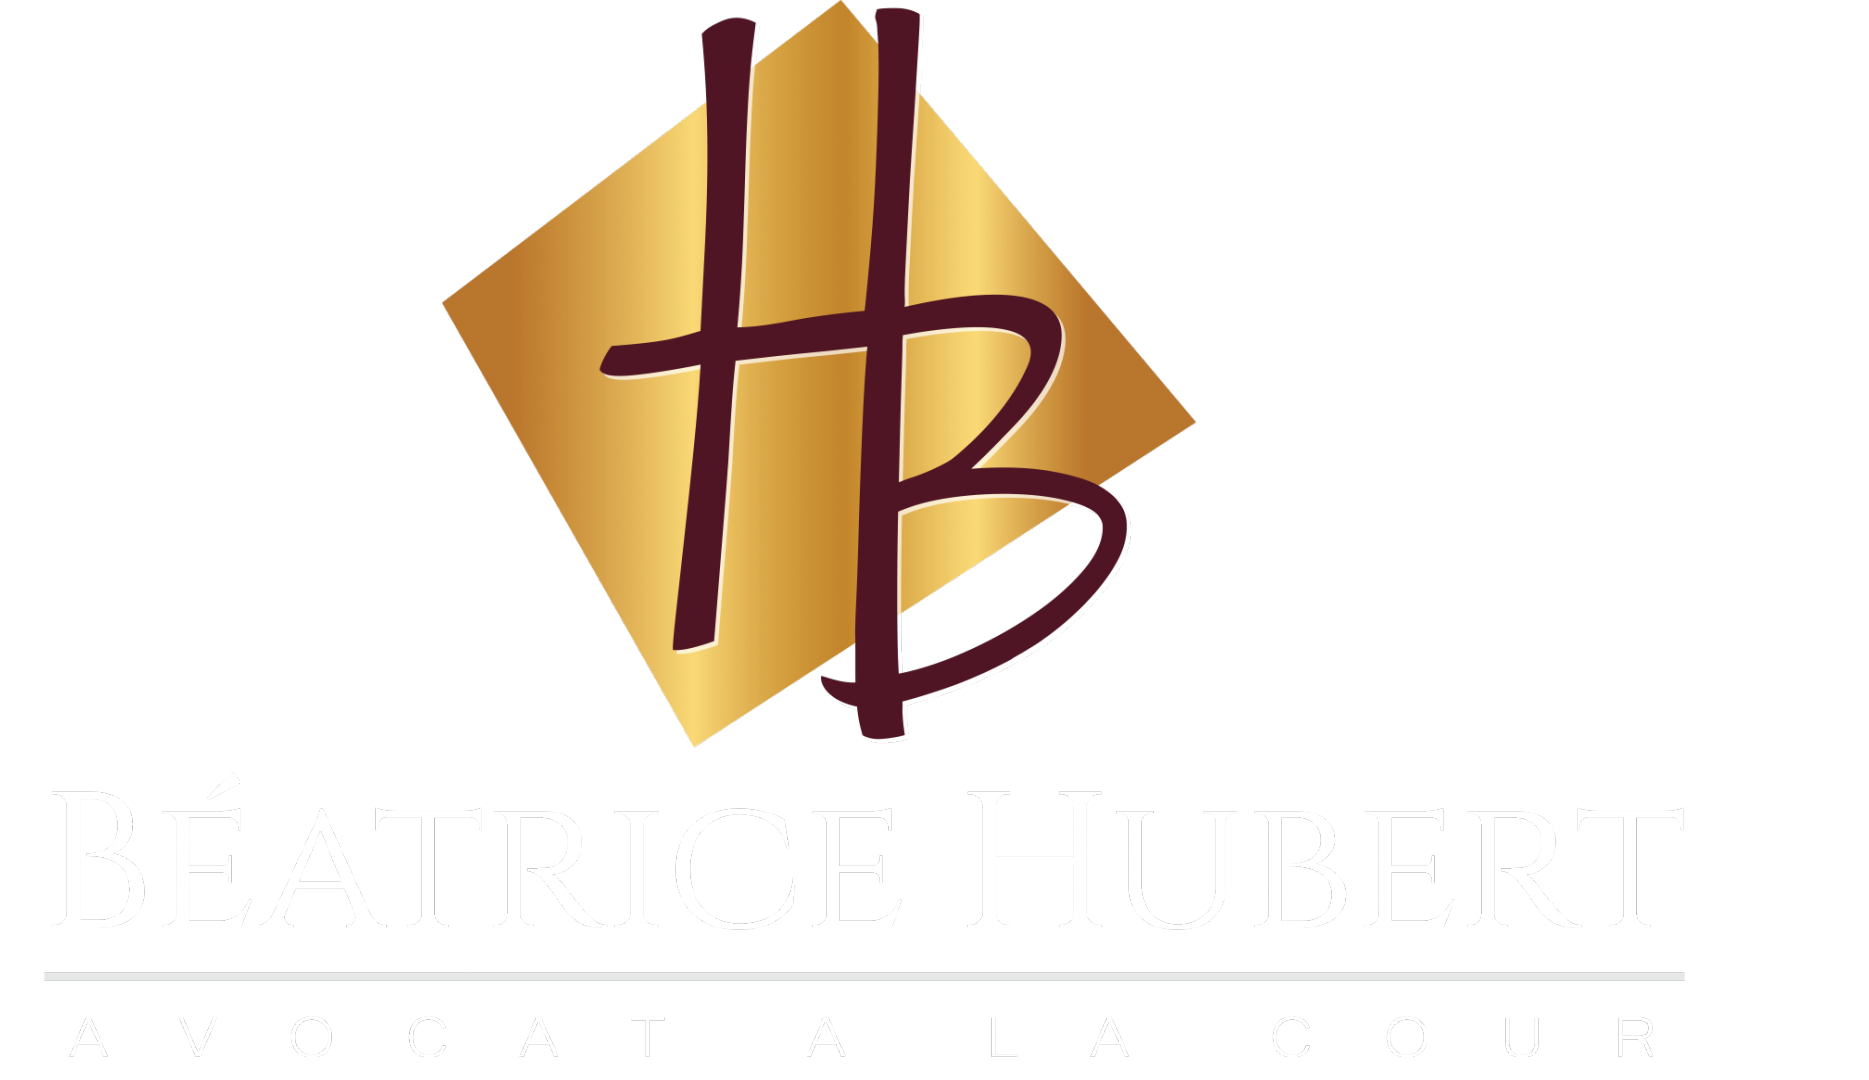 HUBERT BEATRICE